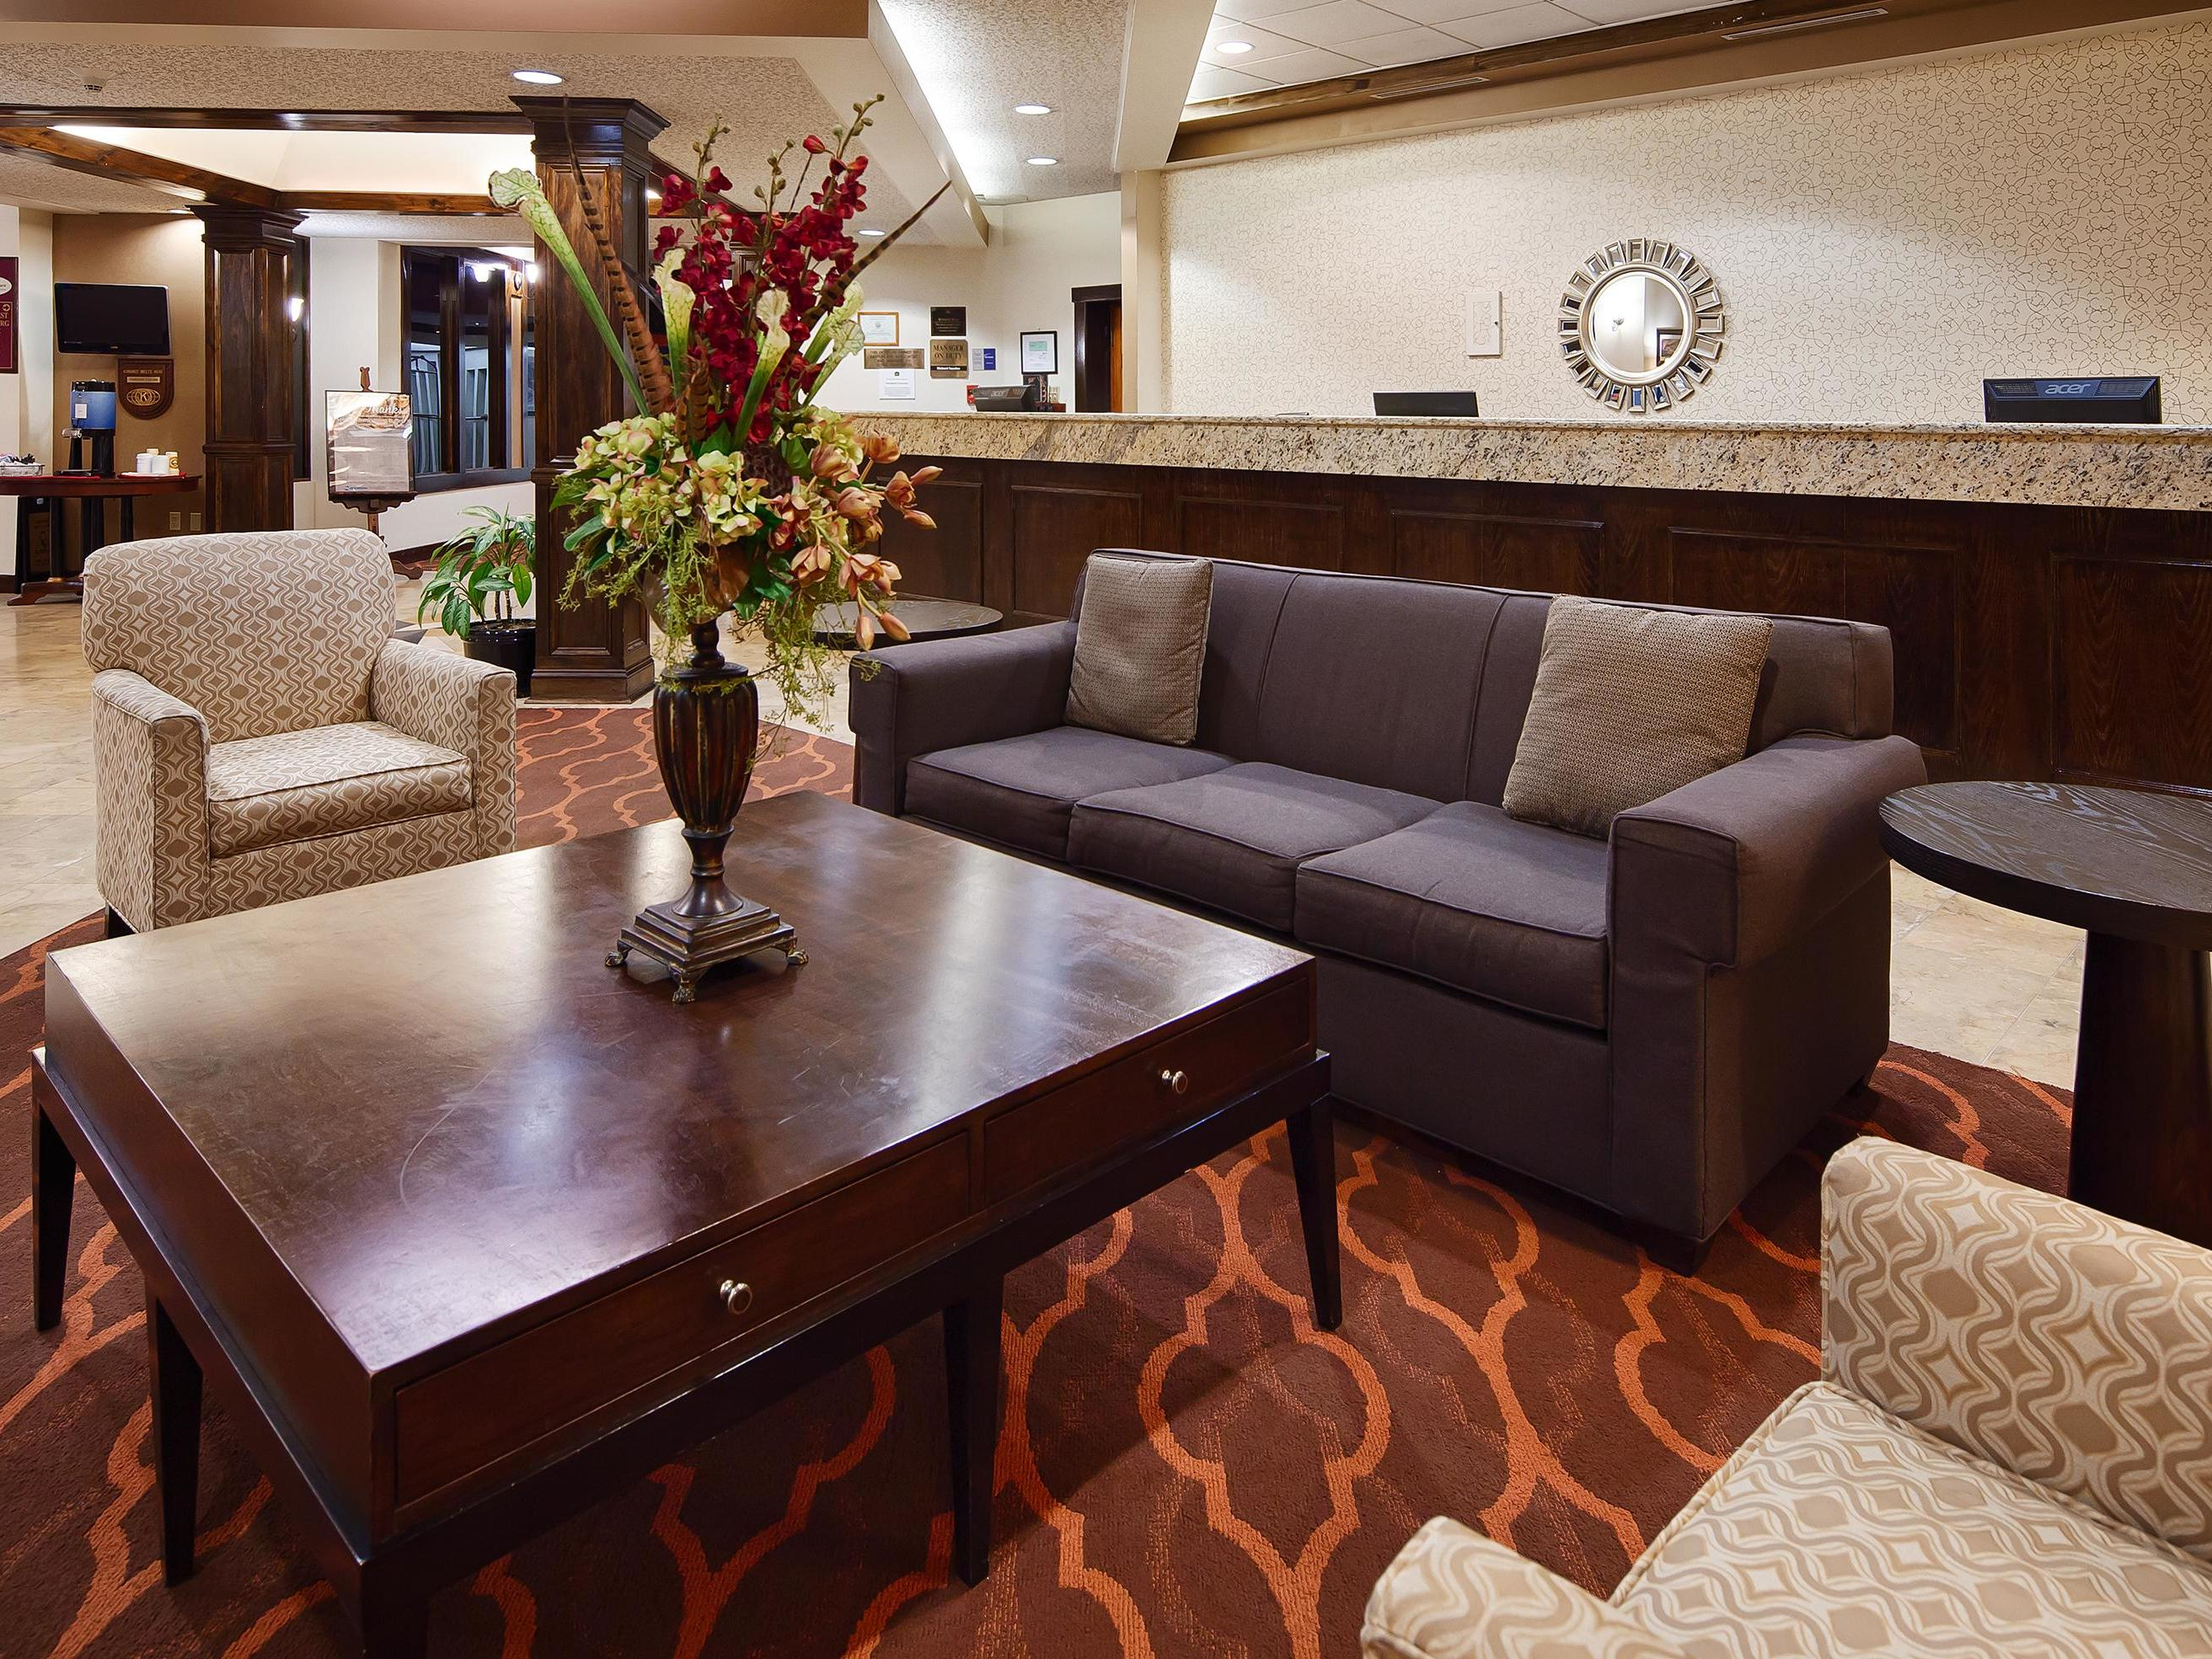 hotel lobby with lounge area